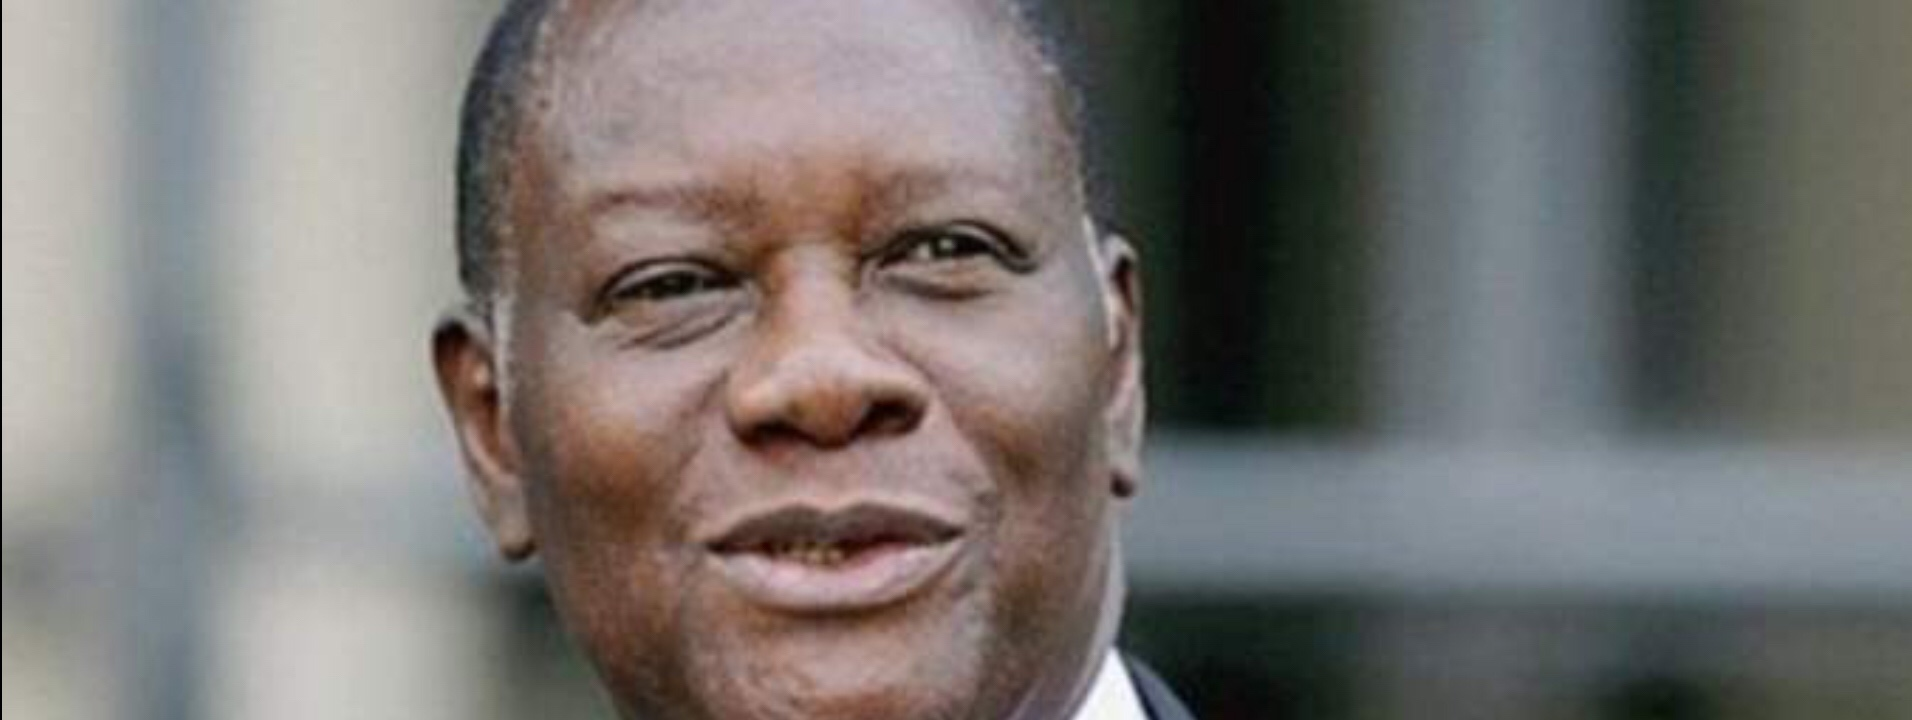 Cote d'Ivoire President Ouattara aims at re-election